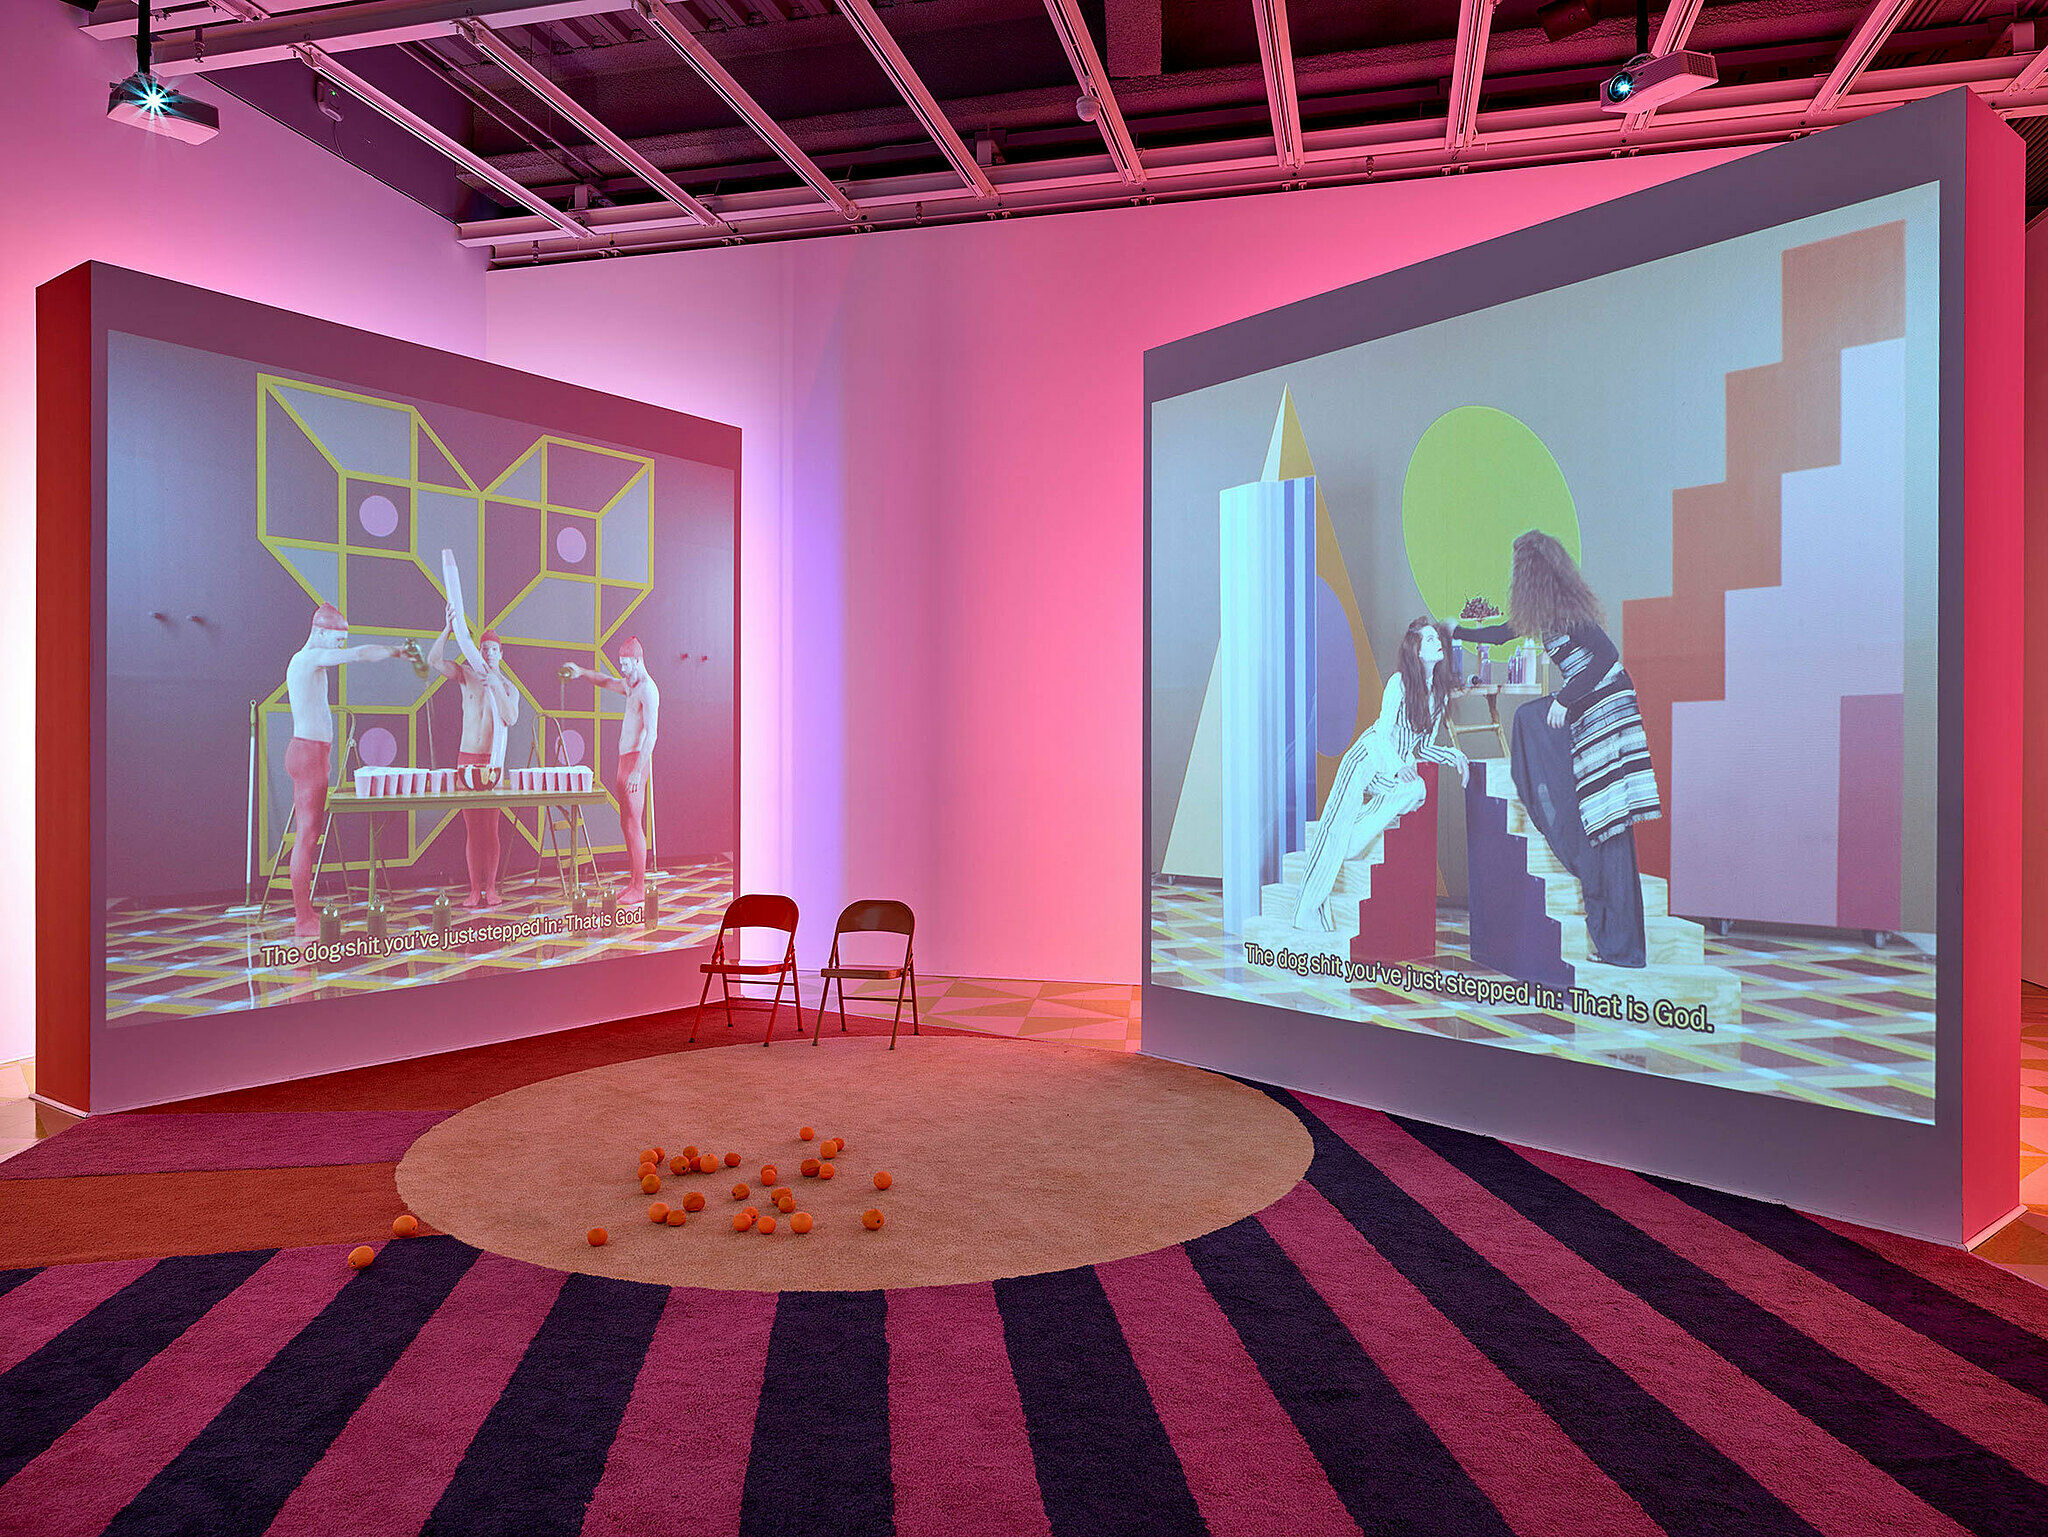 Installation view of Easternsports; two videos projected on large screens in neon pink room